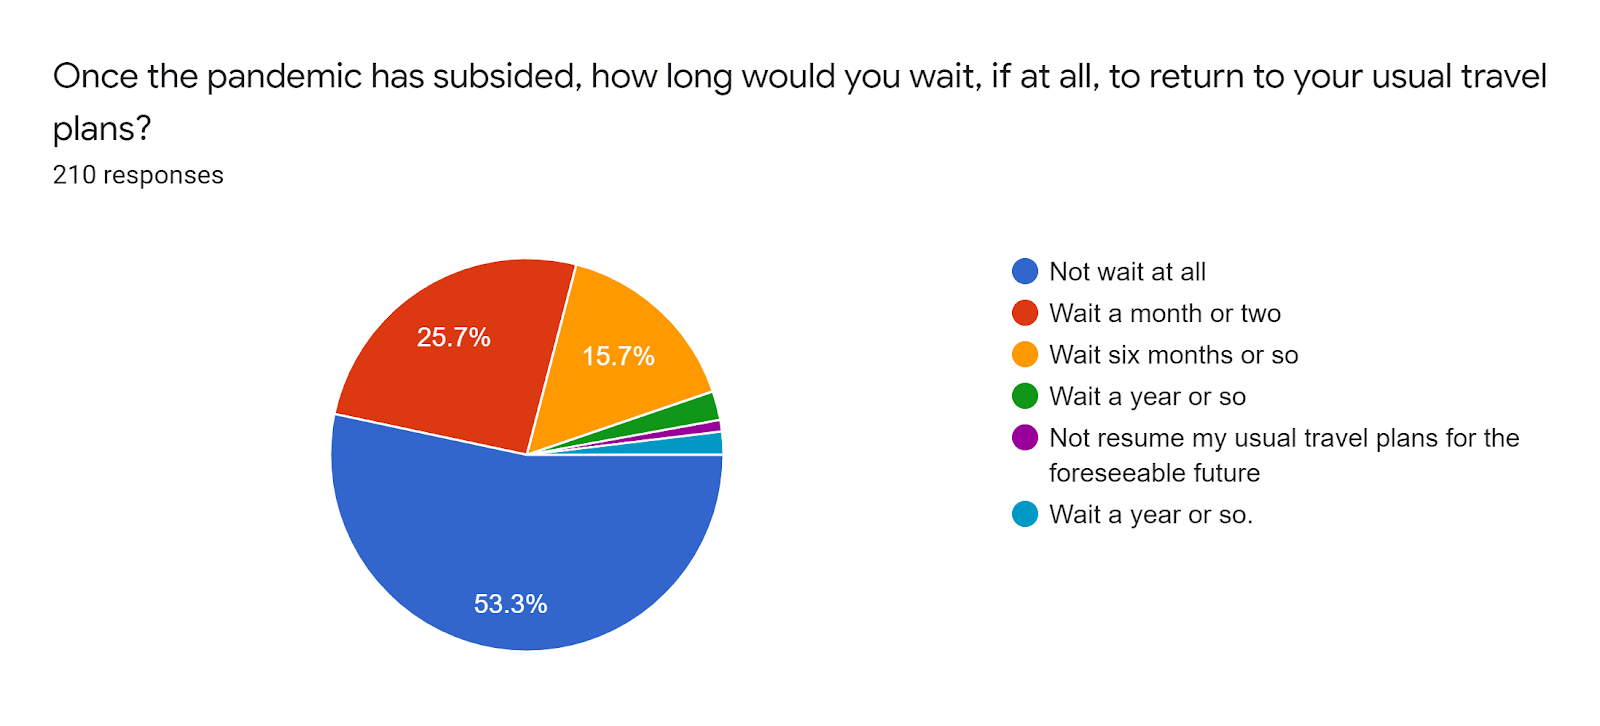 Forms response chart. Question title: Once the pandemic has subsided, how long would you wait, if at all, to return to your usual travel plans?. Number of responses: 210 responses.